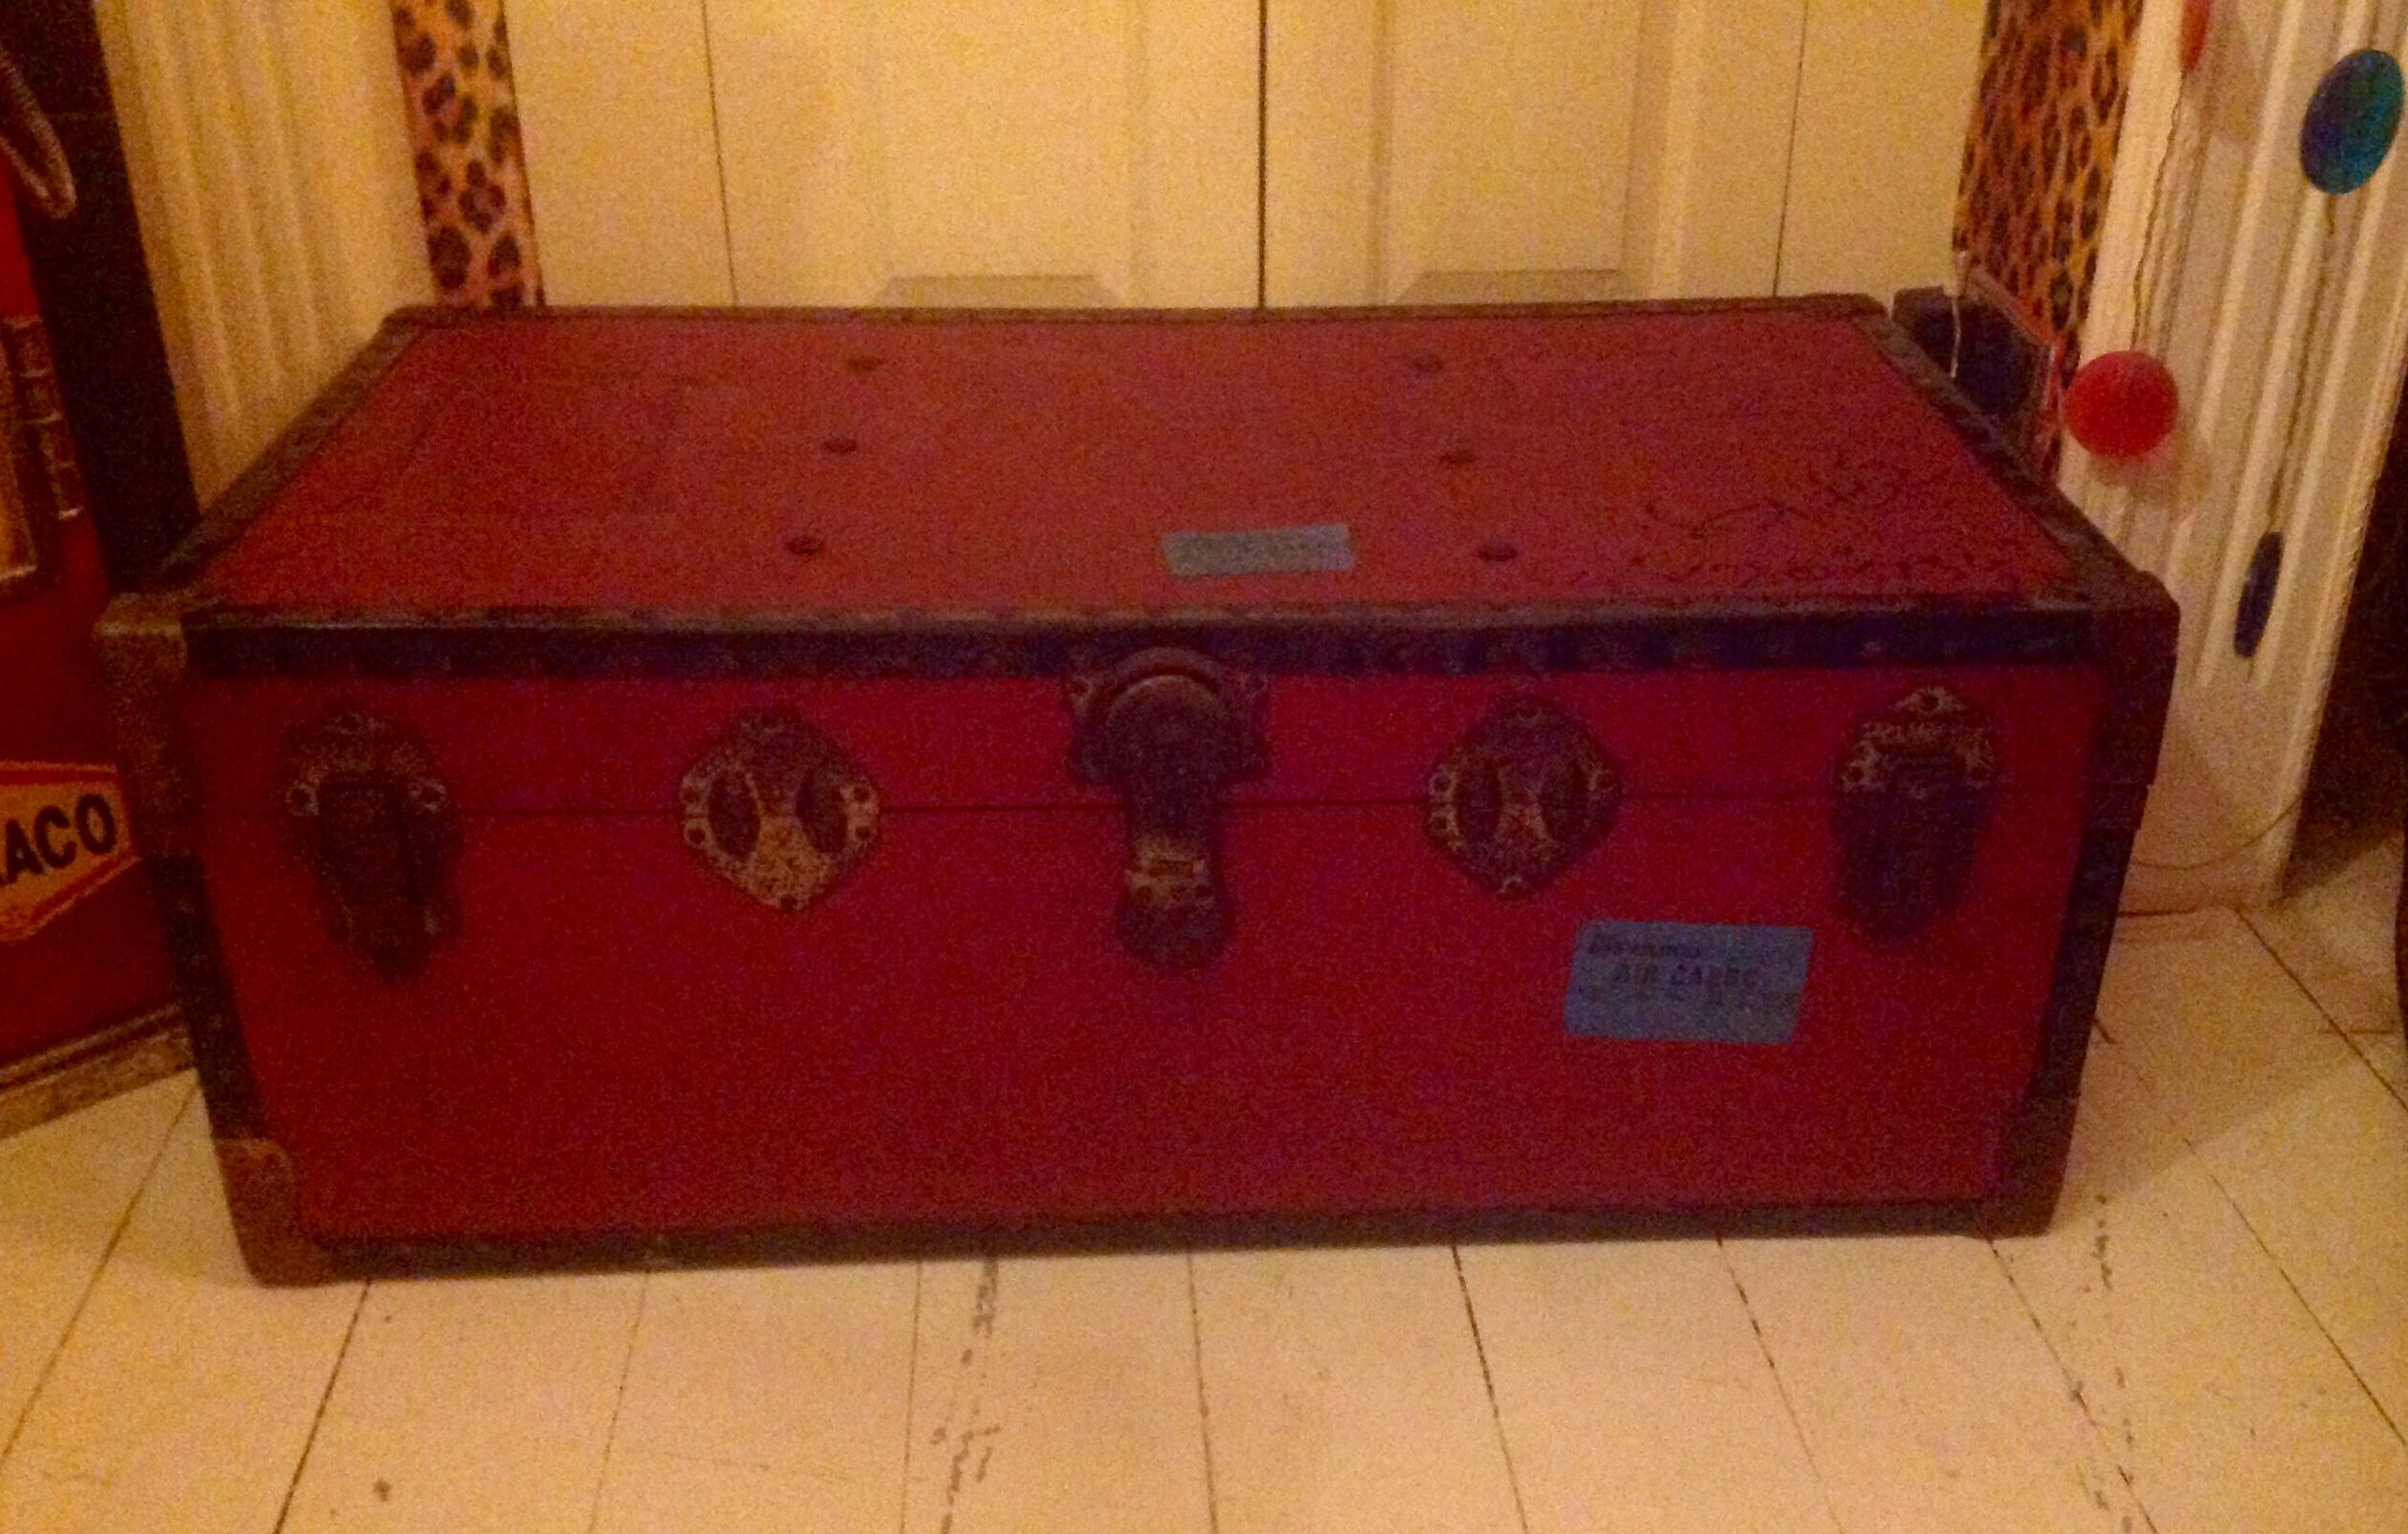 Large Vintage Red Overpond Steamer Trunk Shipping Chest Coffee Table Storage Nice Chunky Metal Locks And Studded Trim Gives This An Feel